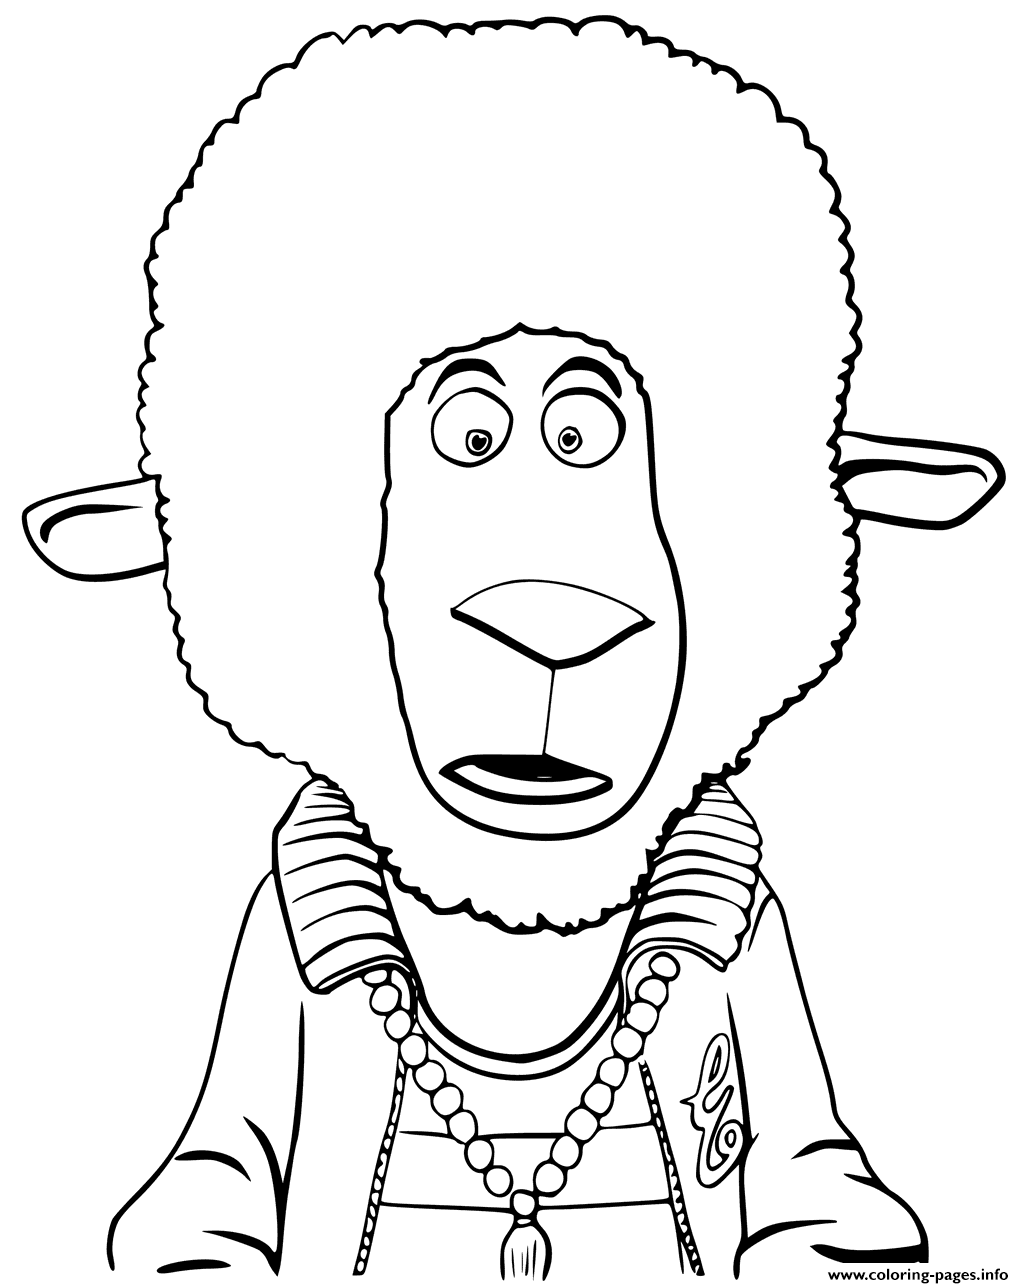 animation coloring pages Eddie Noodleman Sheep From Sing Animation Coloring Pages Printable animation coloring pages